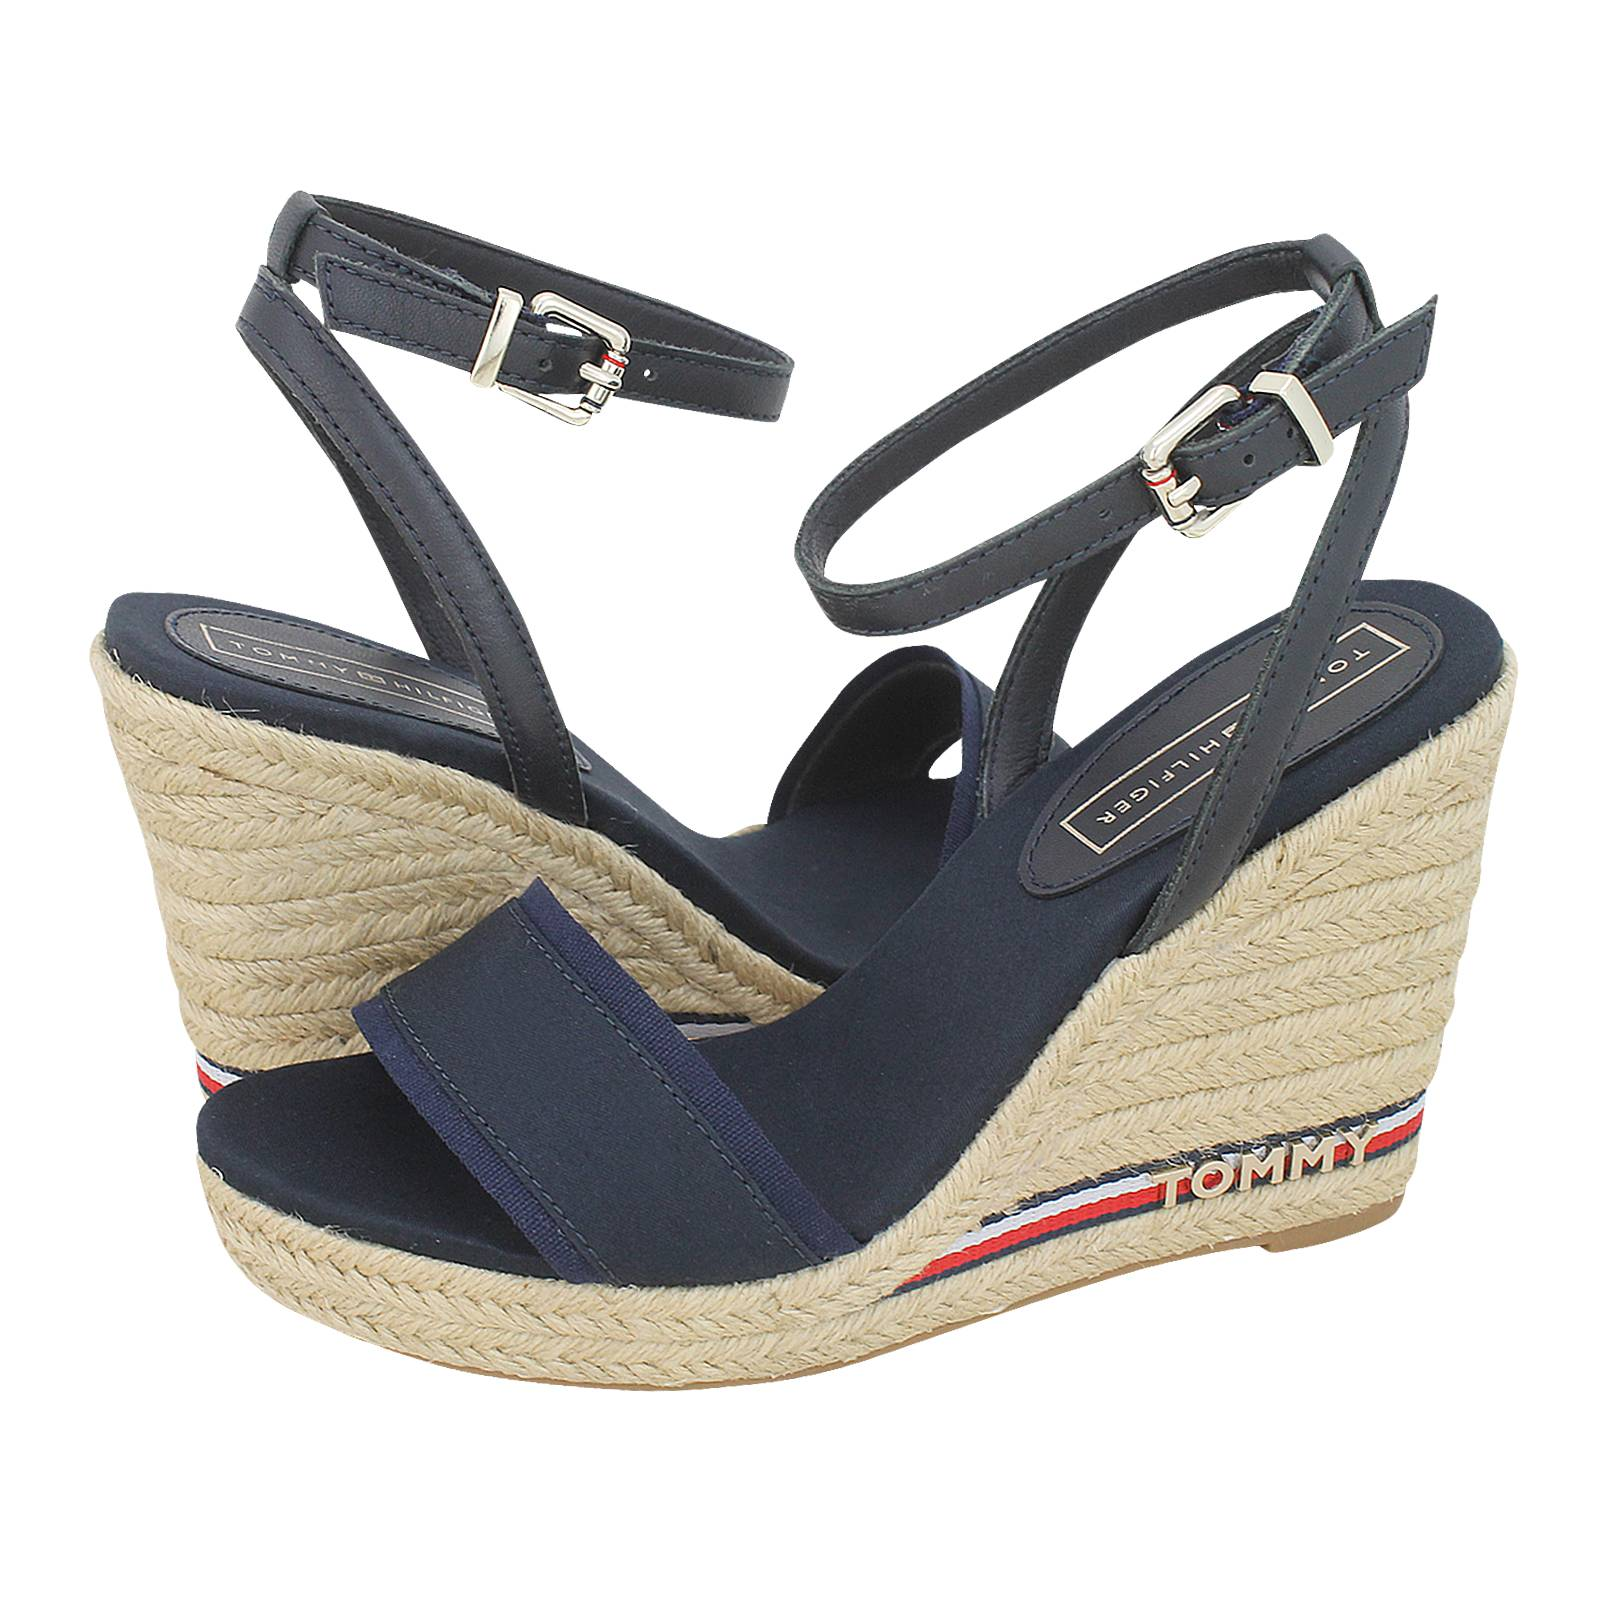 9e693ec63 Iconic Elena Corporate Ribbon - Tommy Hilfiger Women s platforms made of  fabric and leather - Gianna Kazakou Online